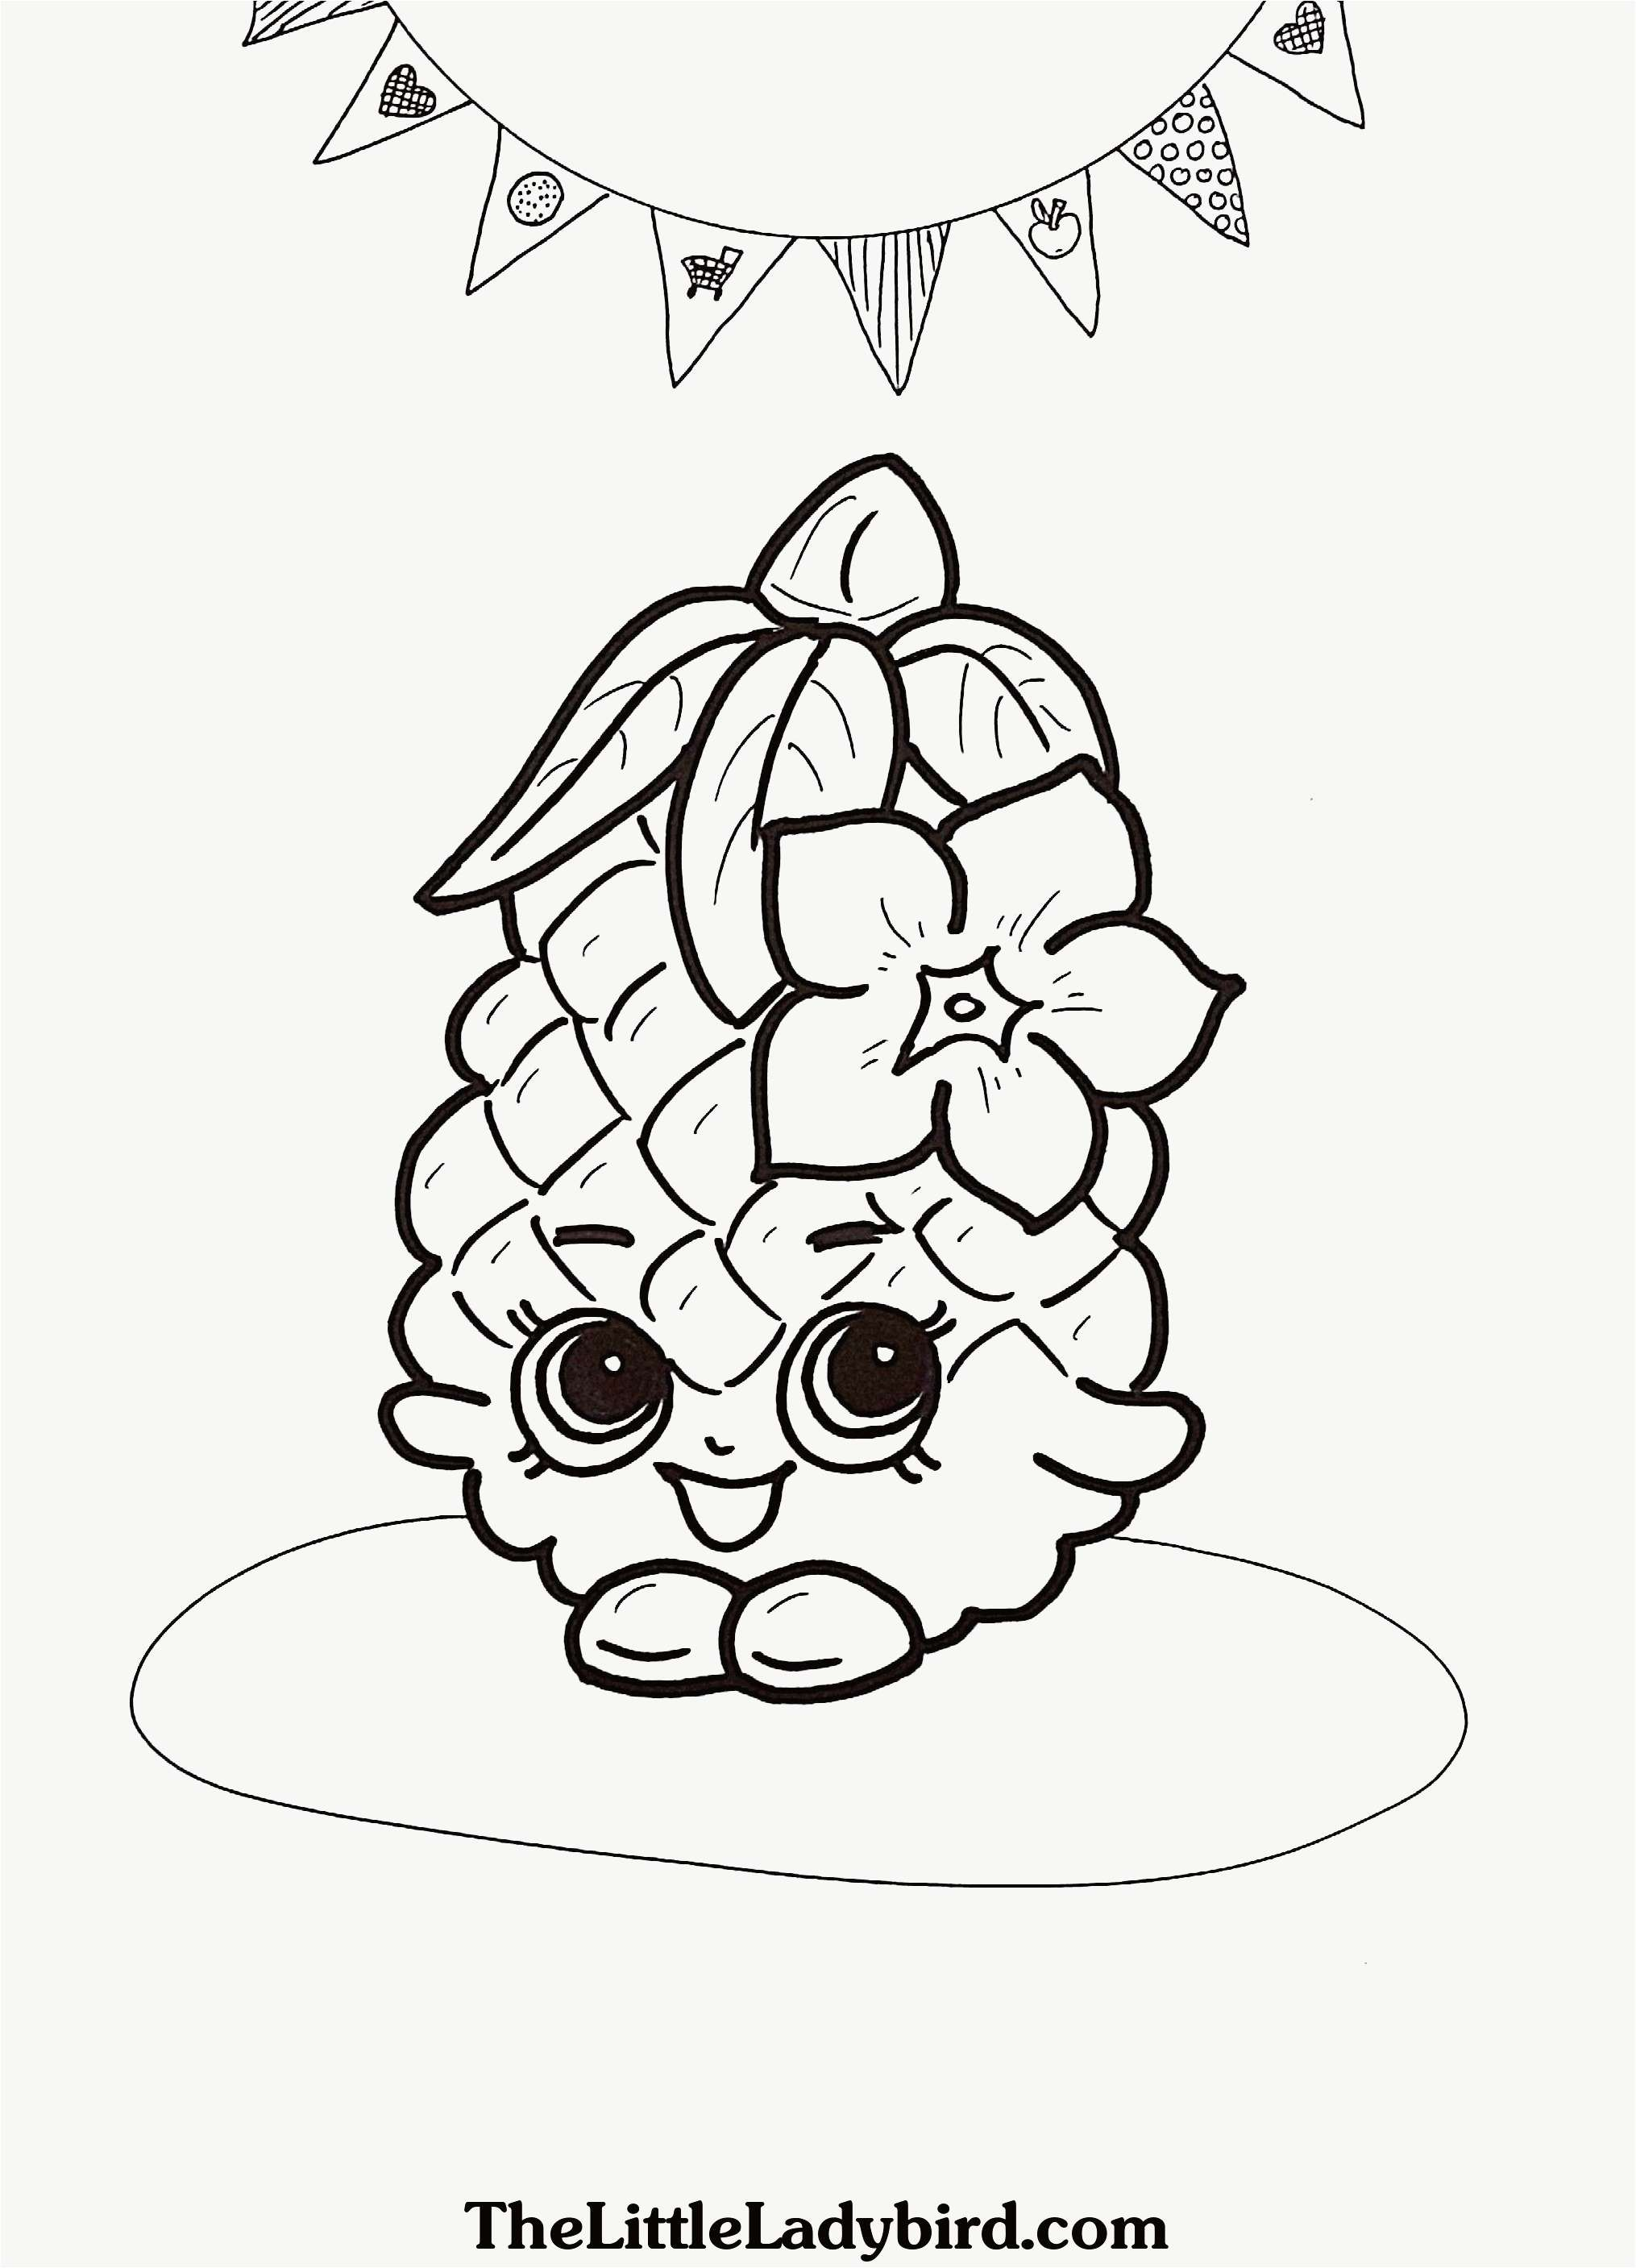 October Coloring Pages  Printable 4h - Free For kids